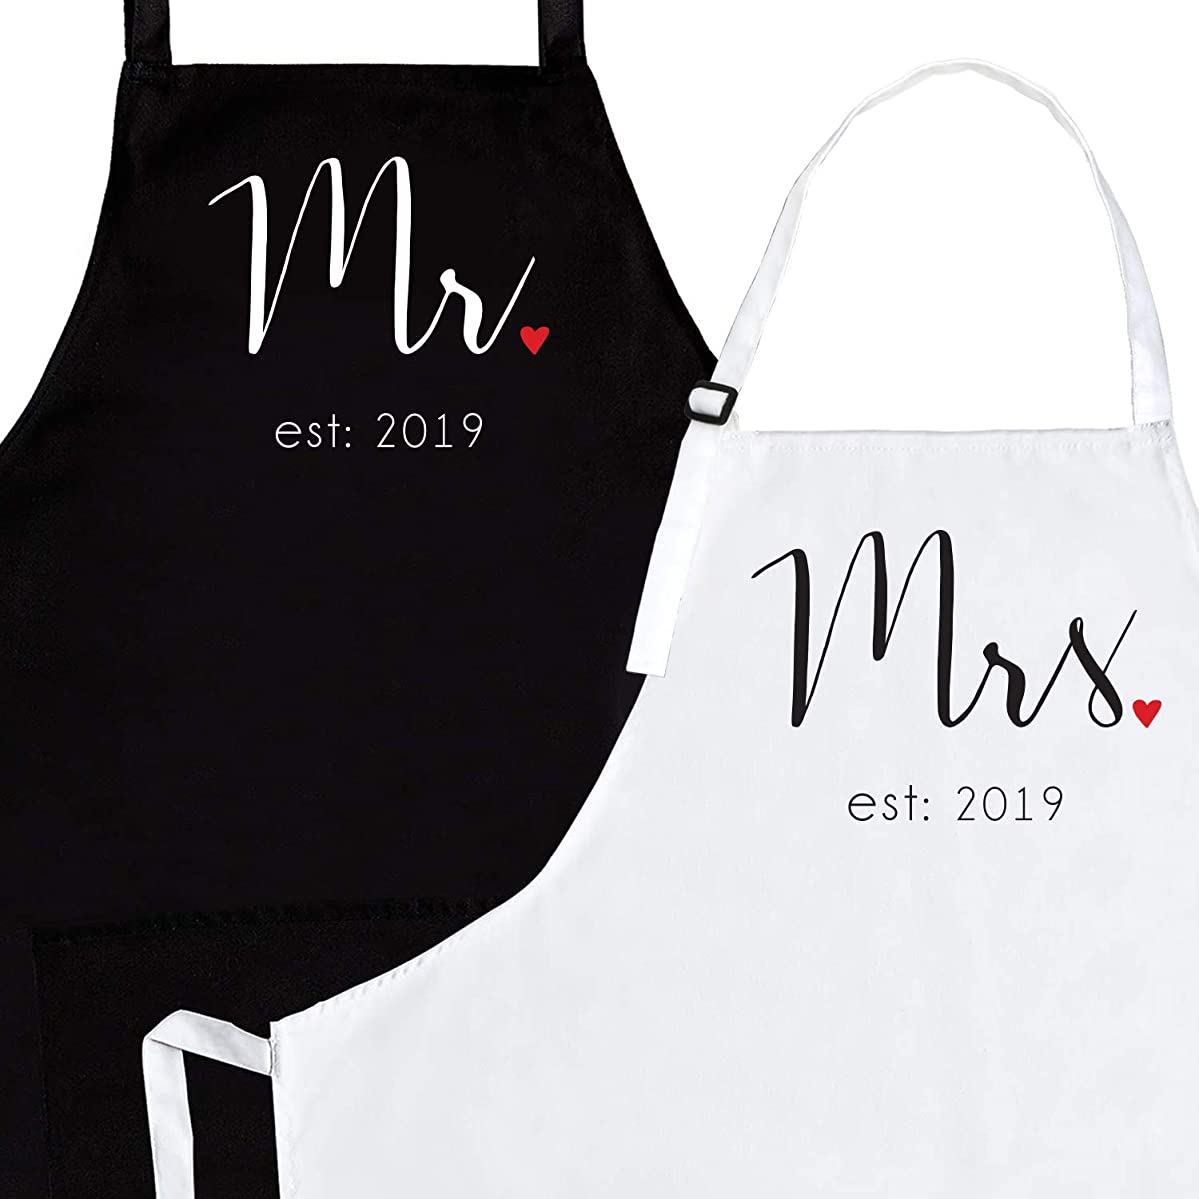 Mr & Mrs Black & White Aprons with Pockets - Funny Newlywed / Bridal Shower / Engagement / Anniversary / Wedding Gifts | His and Hers Matching Couples Aprons (Standard, Mr. & Mrs. Est: 2019)